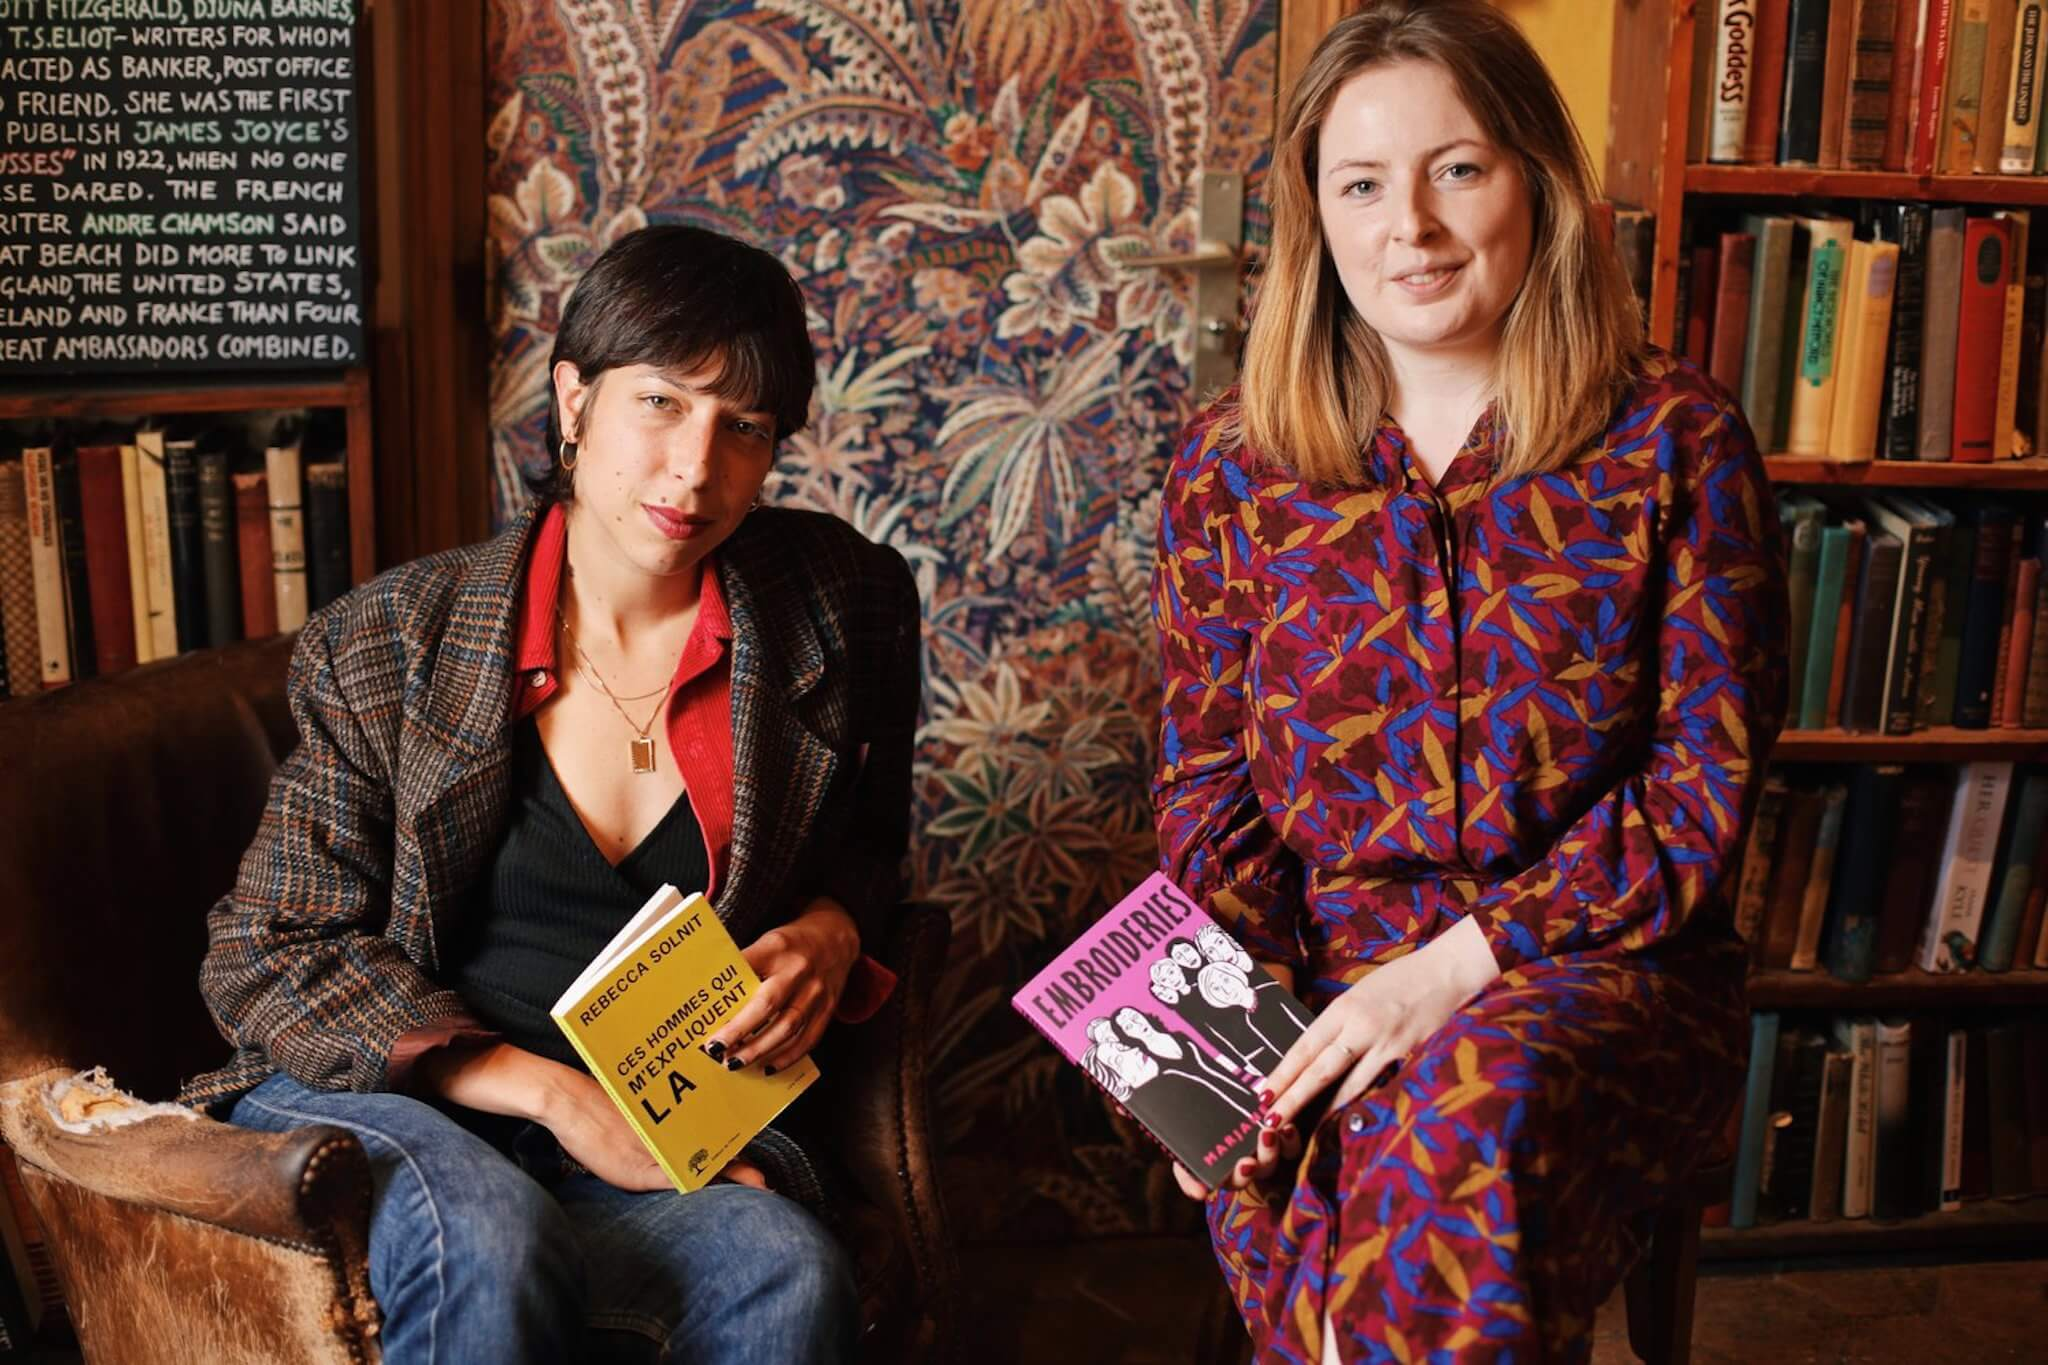 Hosts of the Feminist book club, Camille Lou to the left and Lou Binns to the right, sitting side by side with books in their hands. Camille dressed in a blazer, tshirt and jeans, Lou wearing a long, printed dress, and the two smile at the camera.